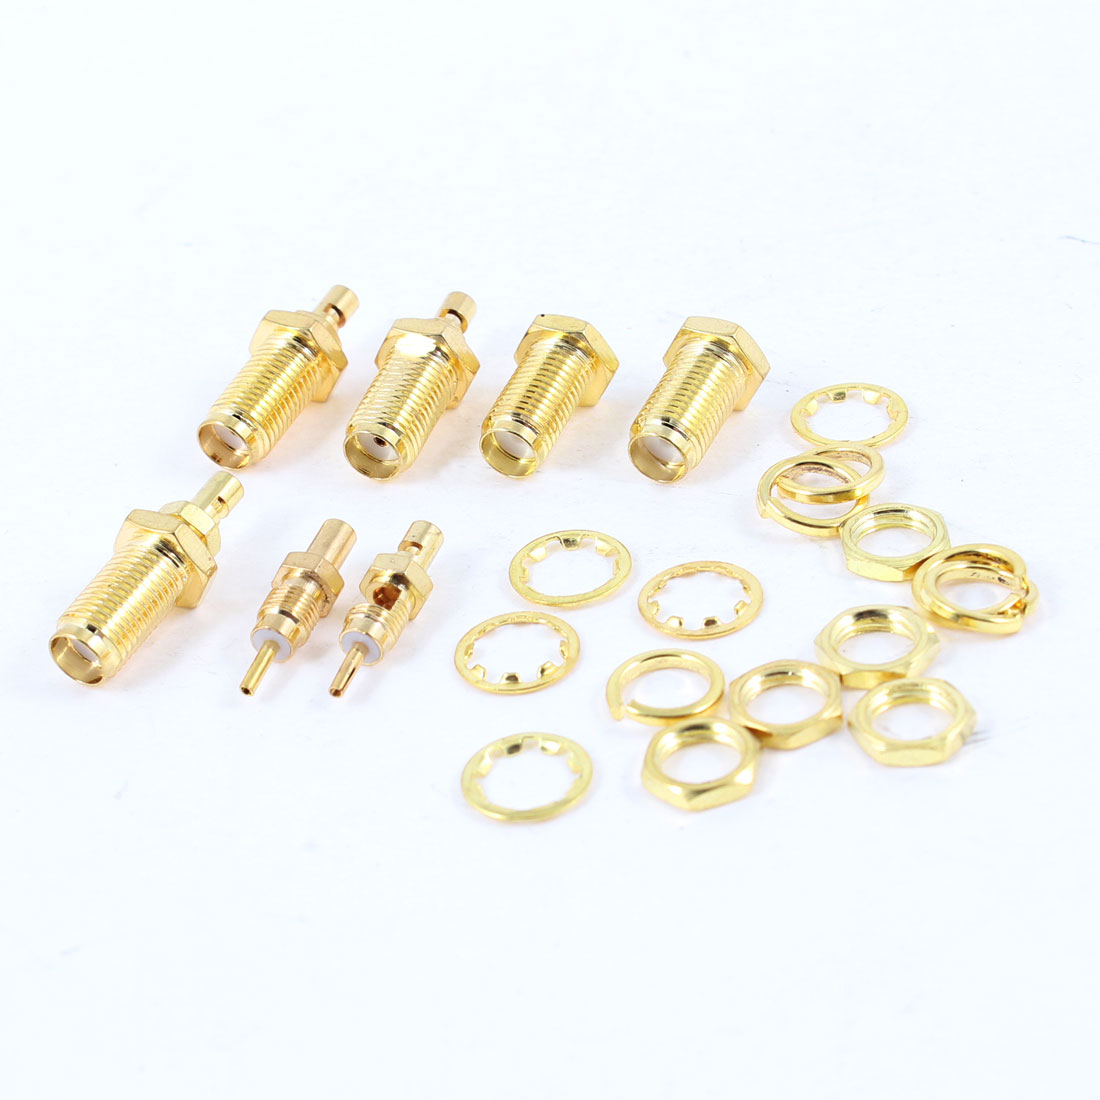 5pcs Big Hole SMA Female Center Nut Bulkhead Crimp RF Coax Connector